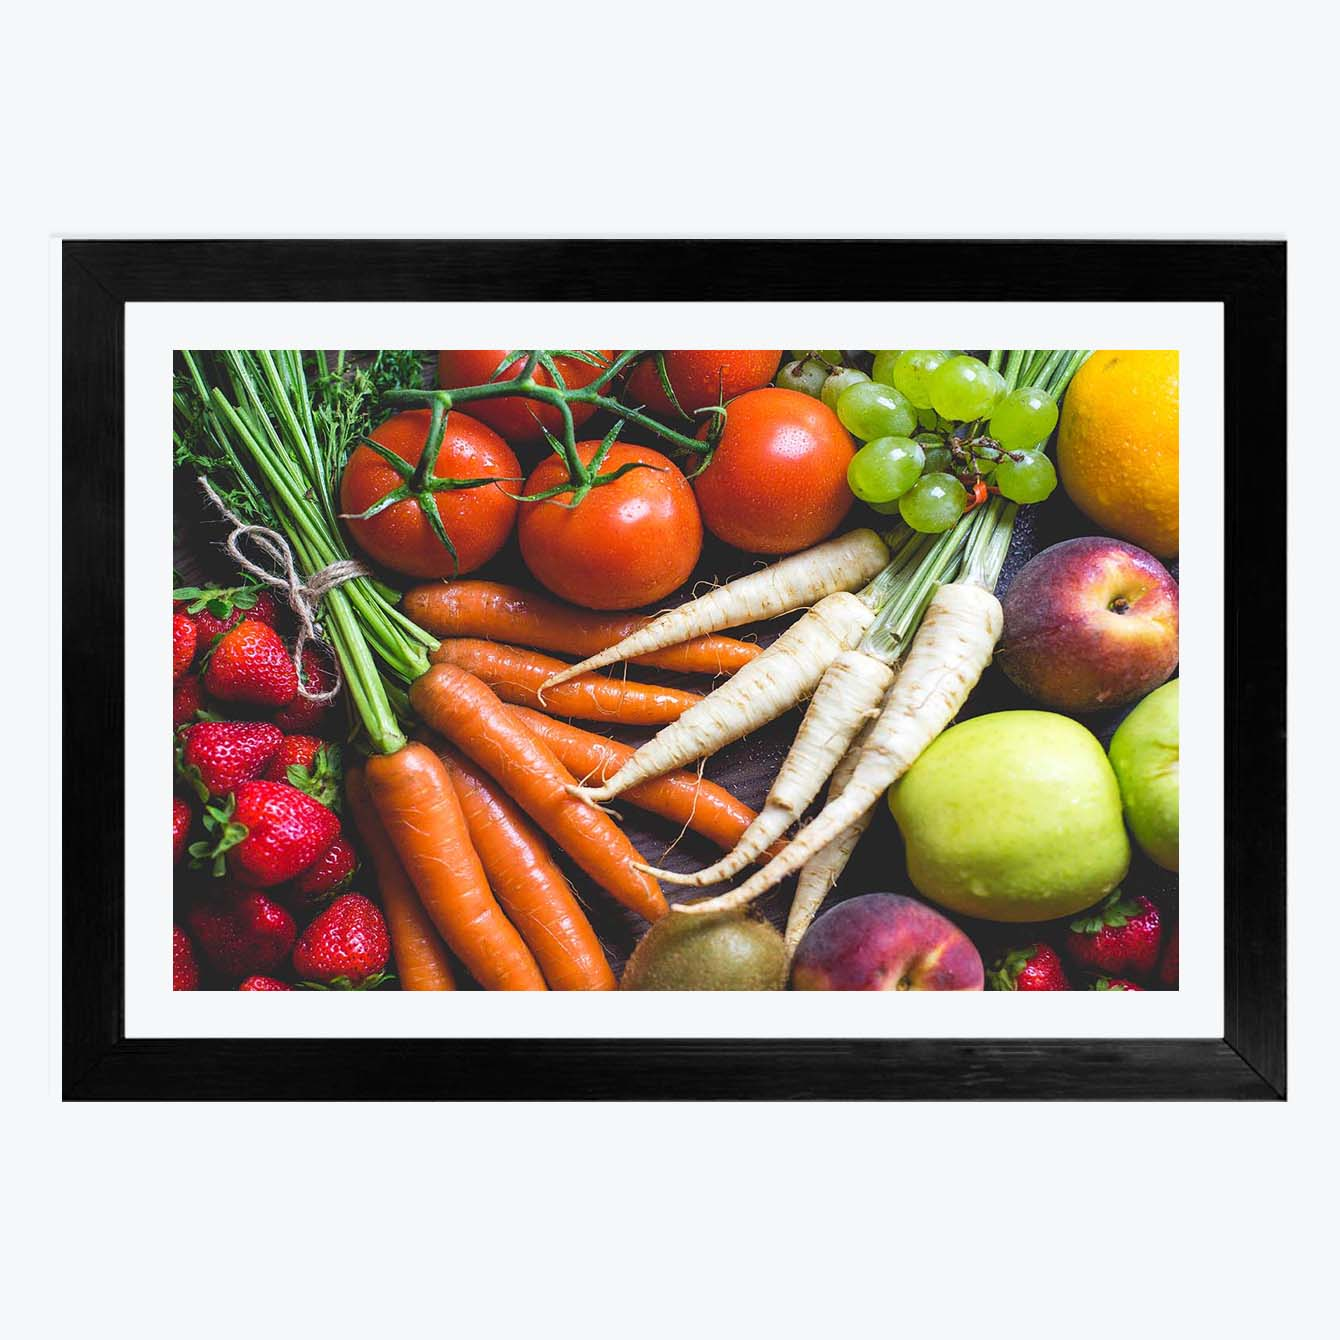 Vegetable Food Framed Photography